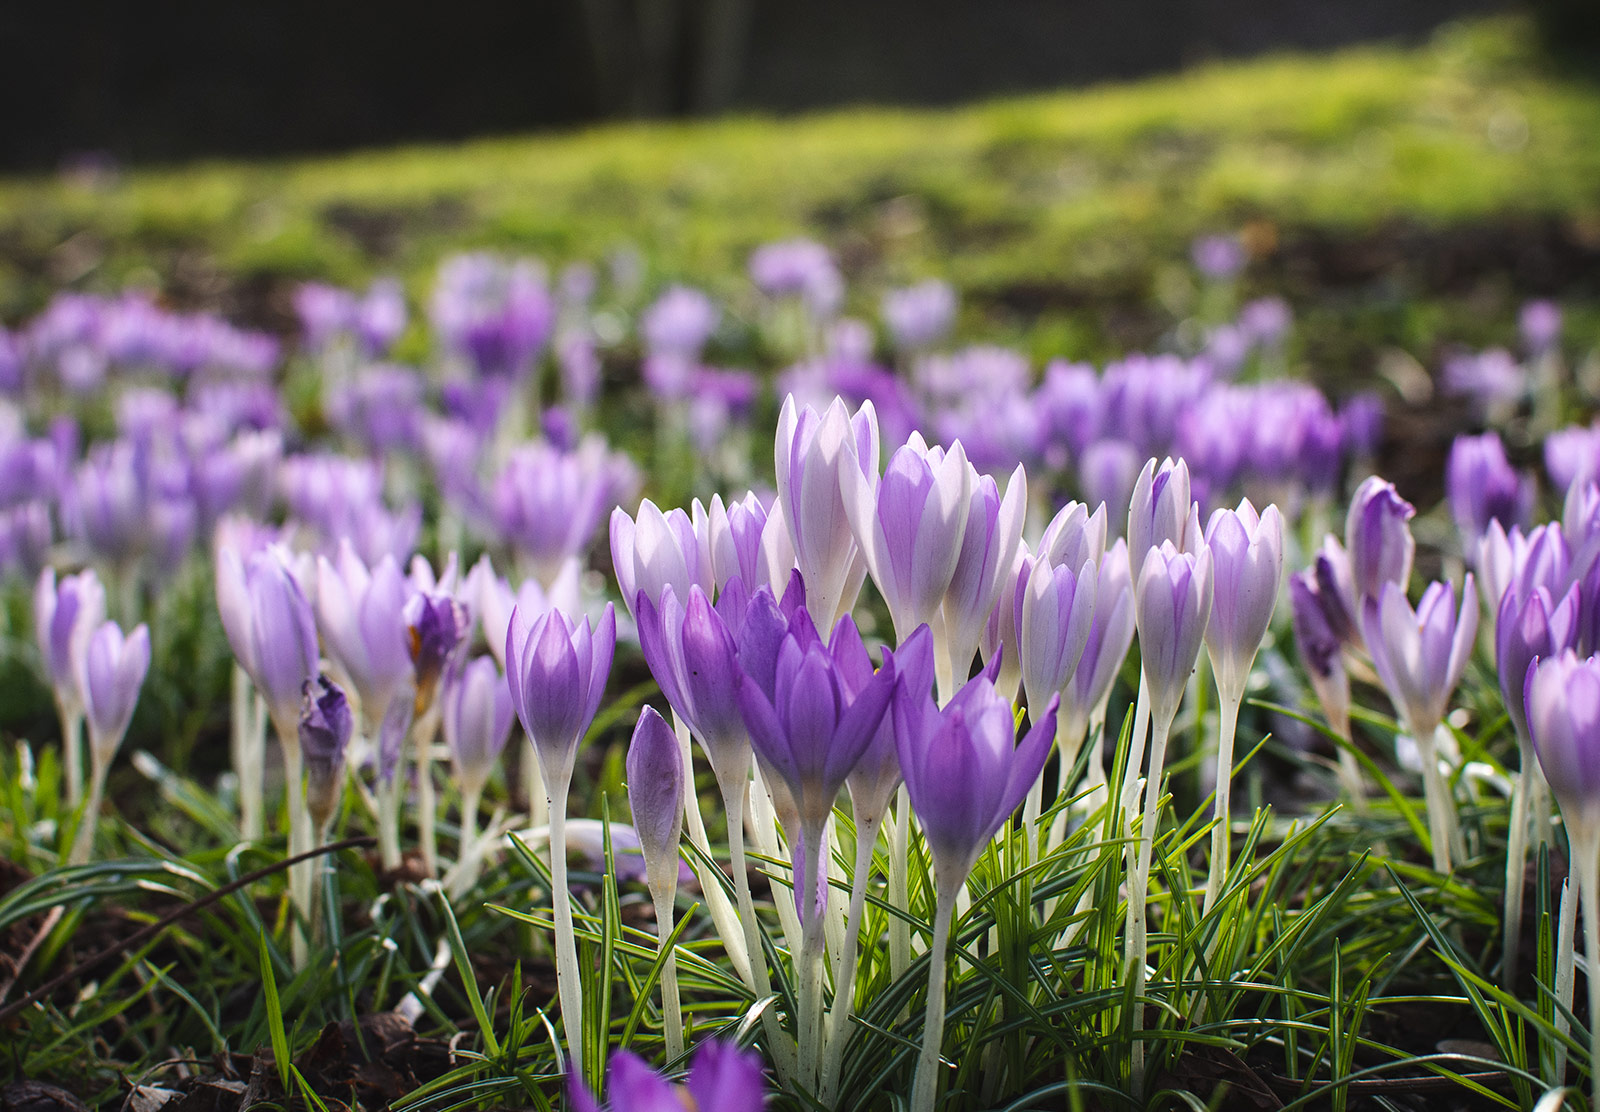 Cluster of closed crocus